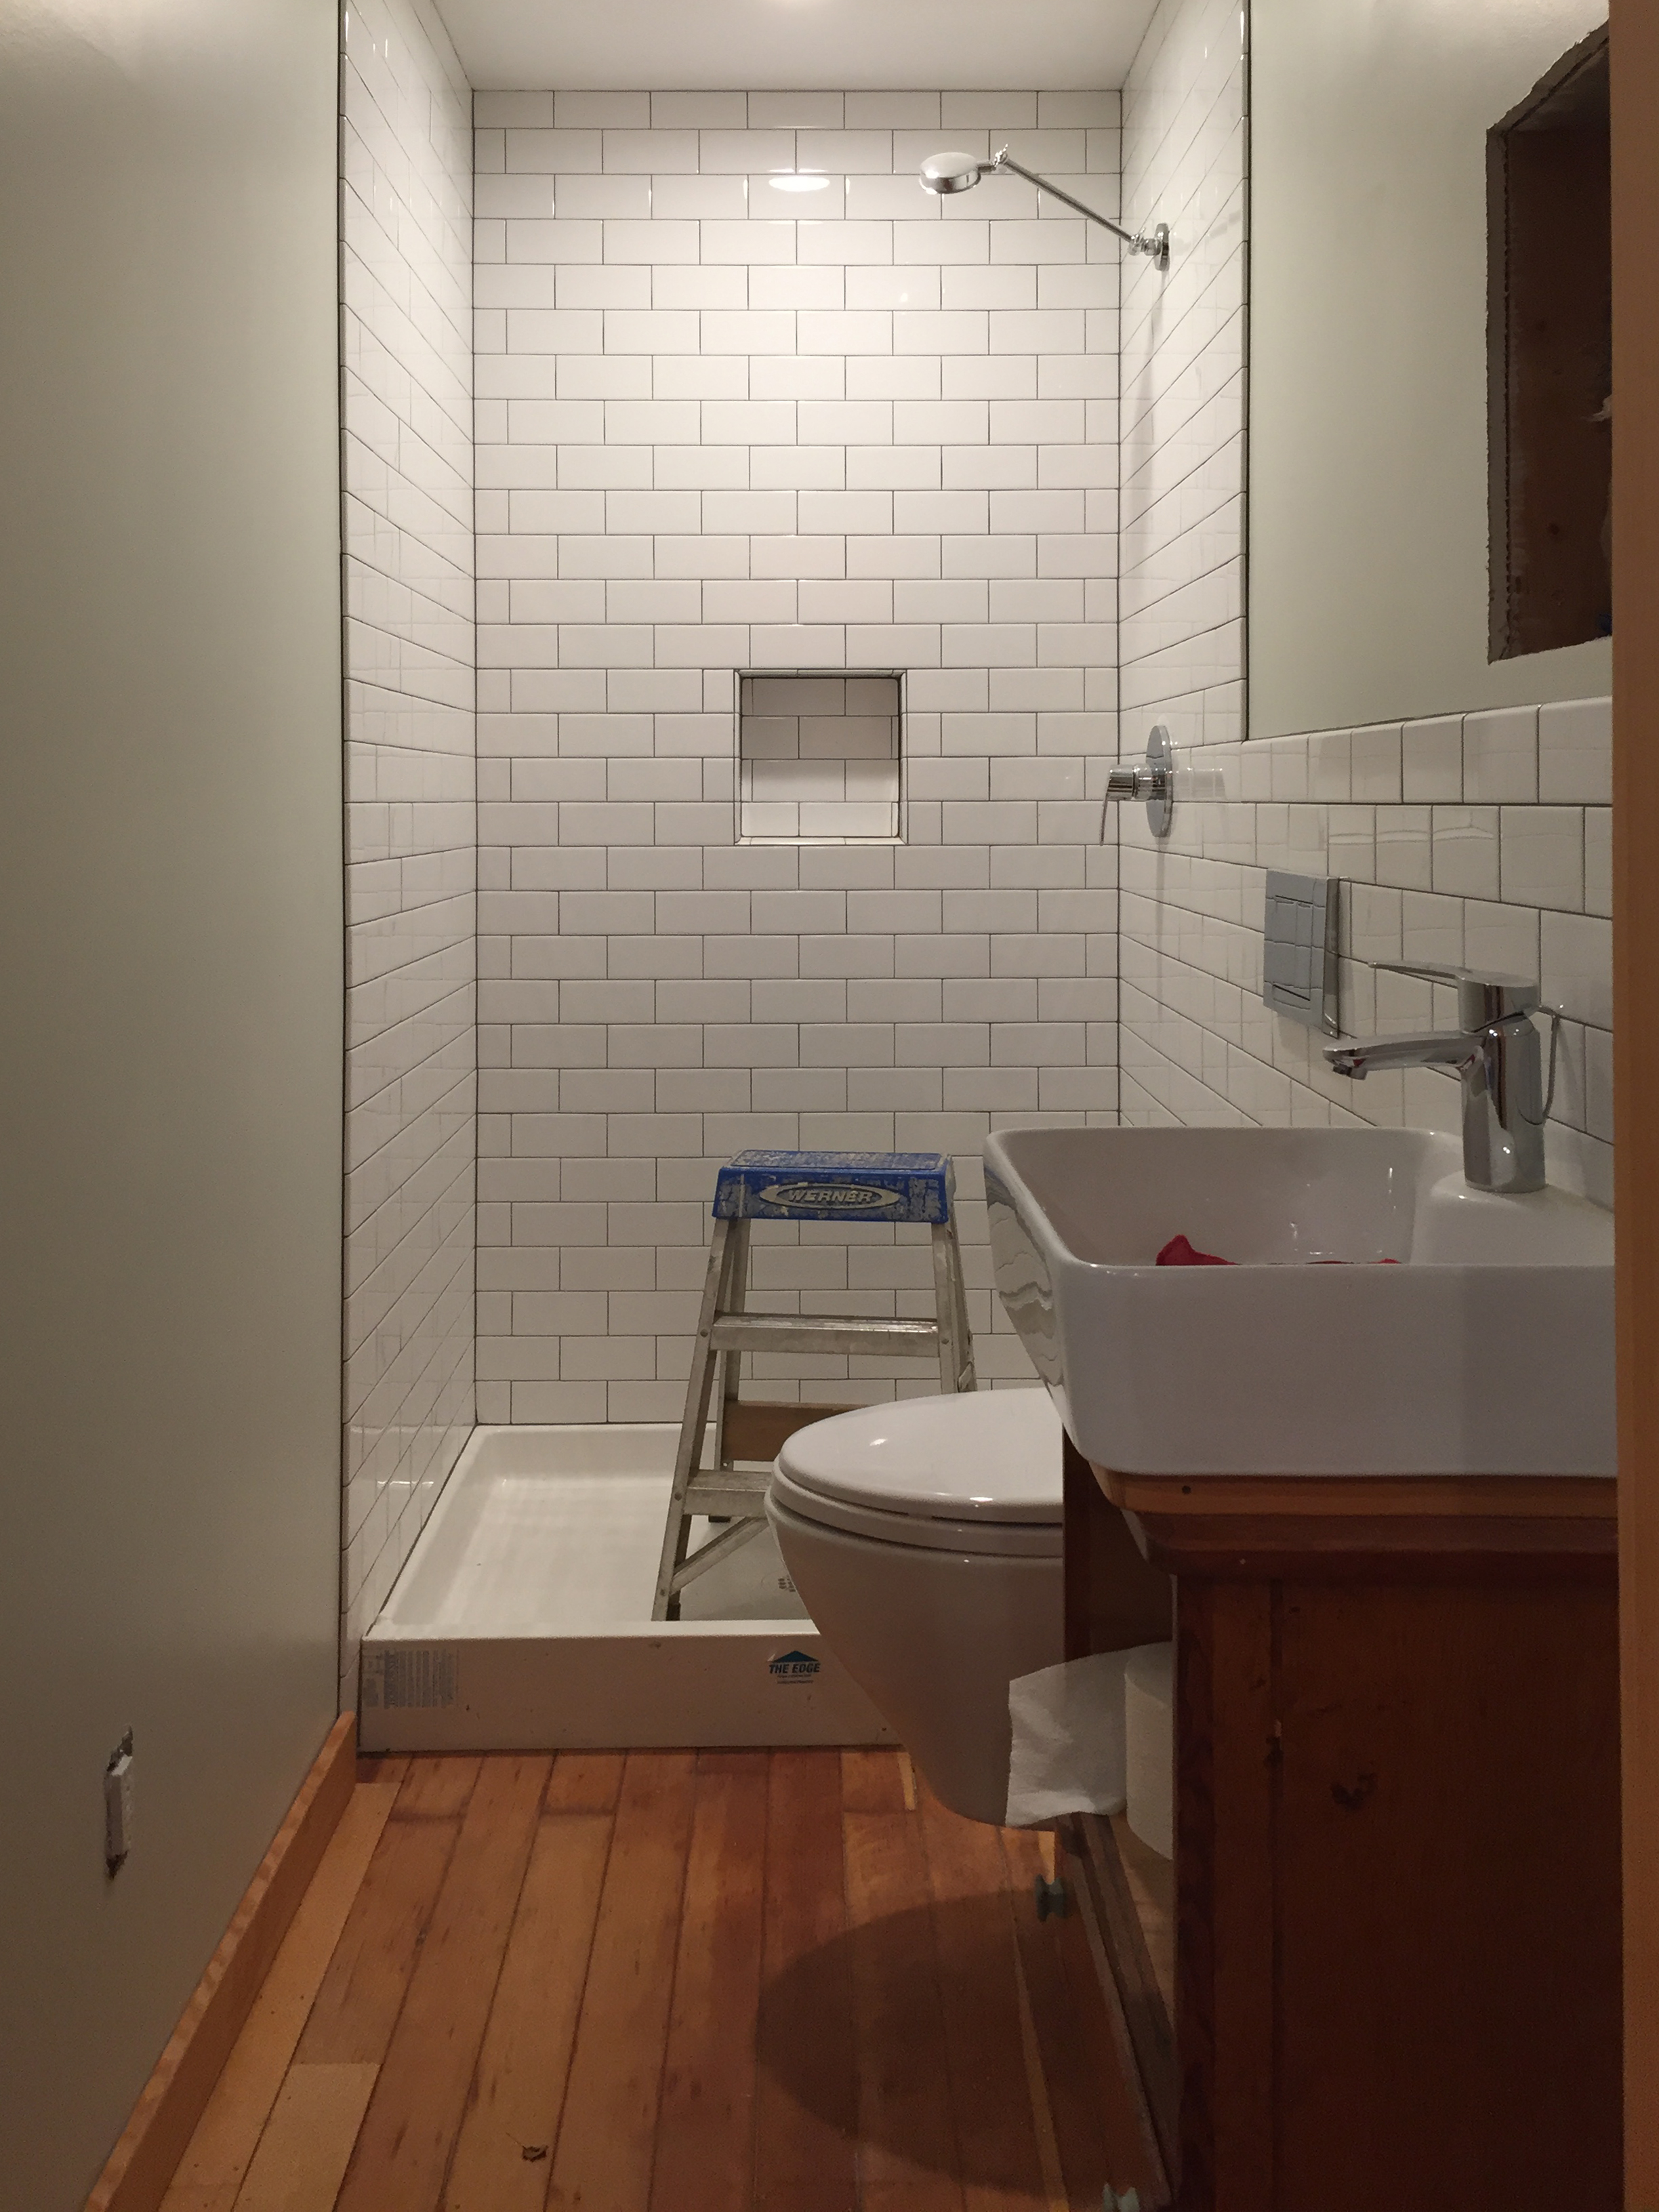 A new bathroom on the main floor finds a snug but workable home in what used to be a hallway.